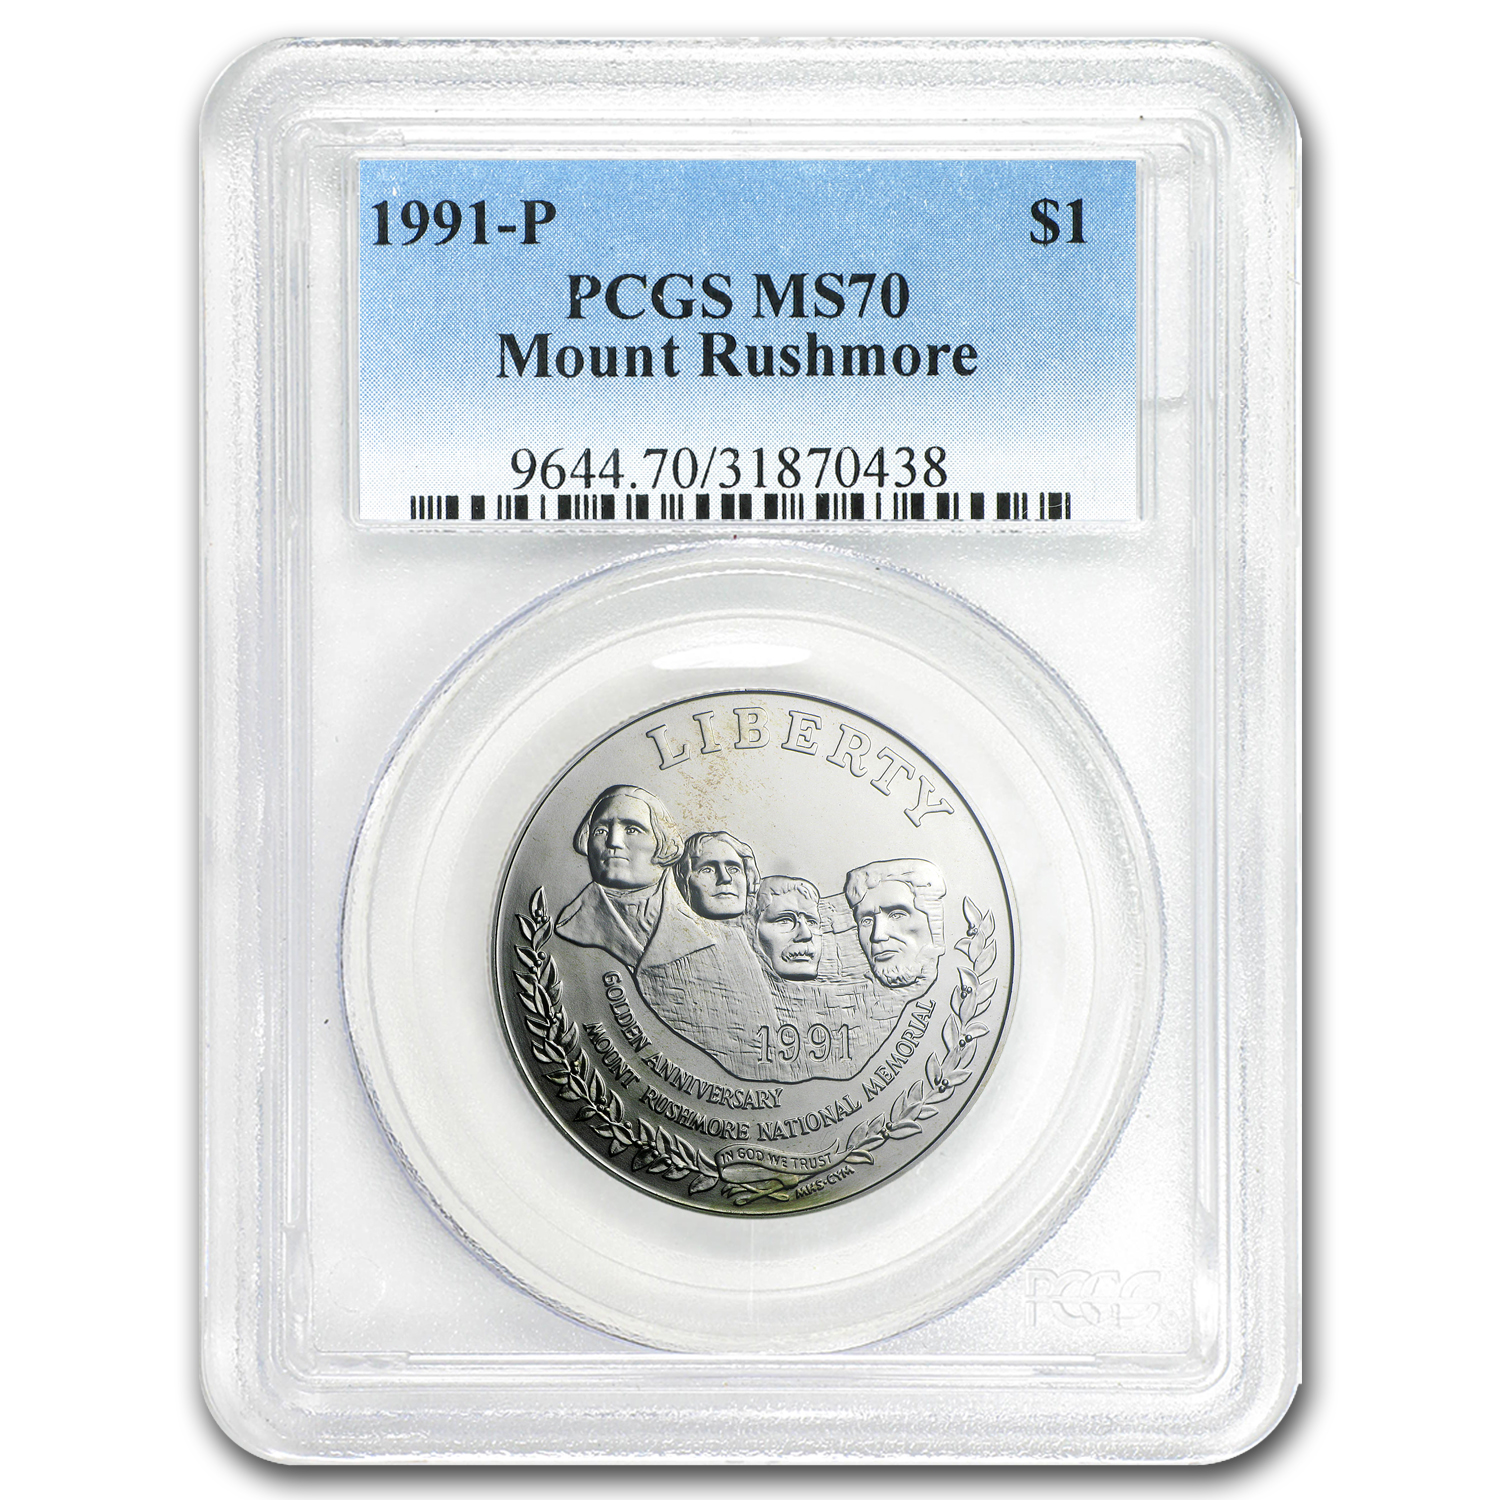 1991-P Mount Rushmore $1 Silver Commemorative MS-70 PCGS